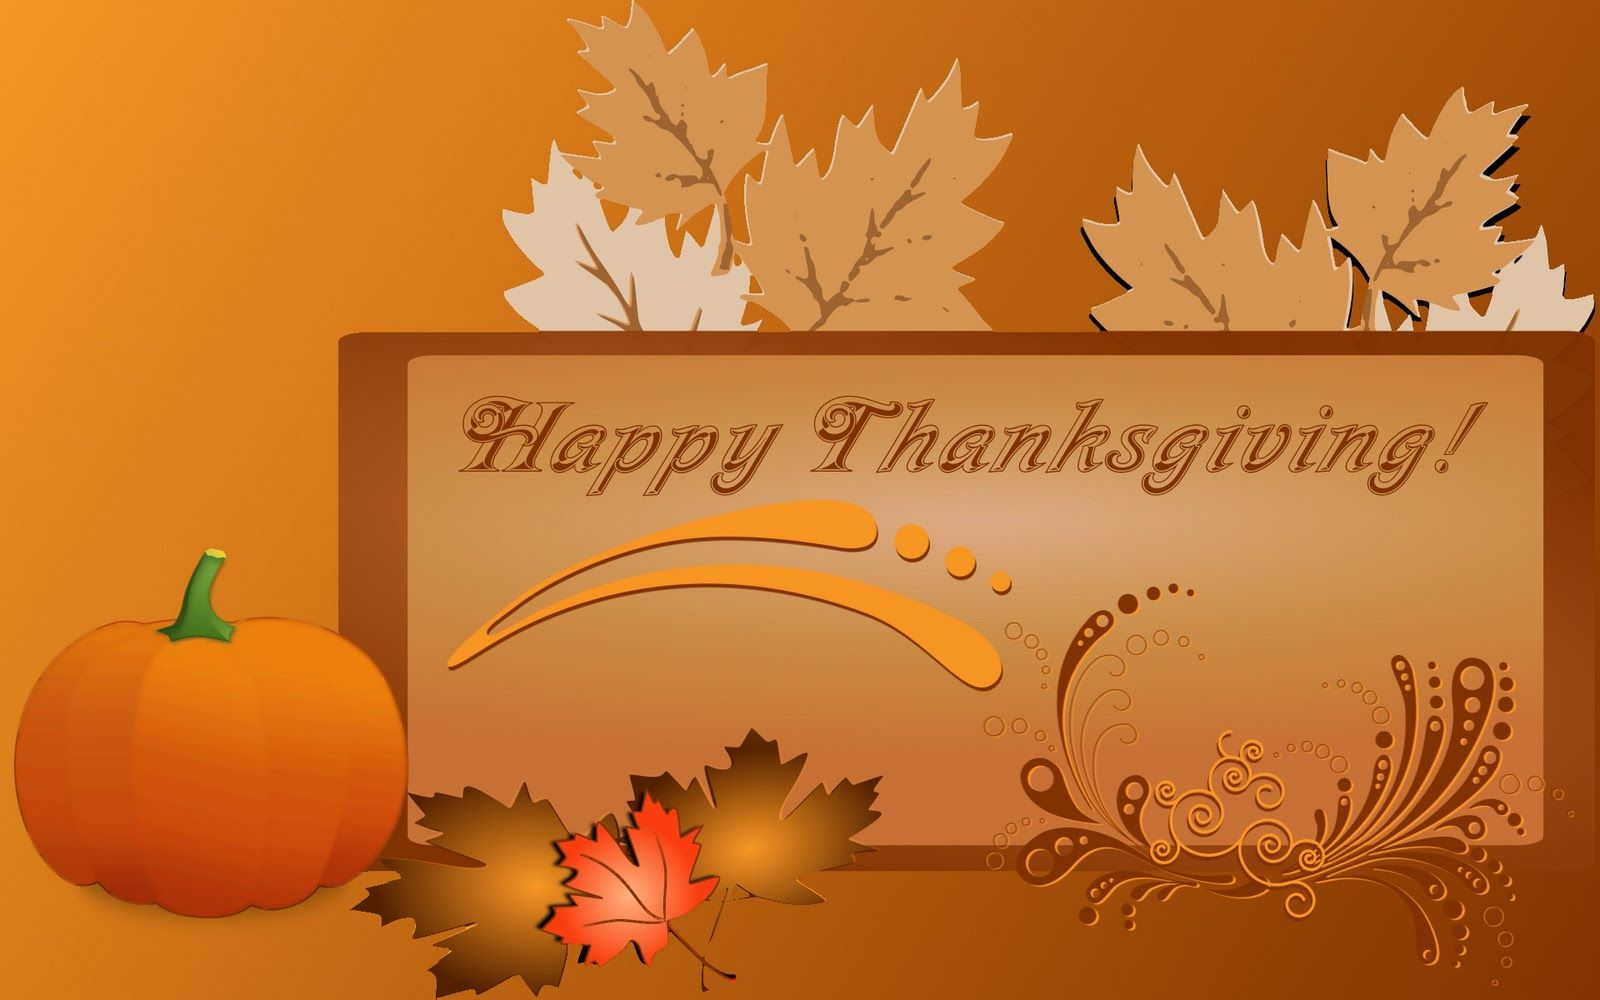 Thanksgiving Wallpaper Greeting Pictures 50 Best Thanksgiving Wallpapers Free Thanksgiving Wallpaper Thanksgiving Wallpaper Happy Thanksgiving Wallpaper